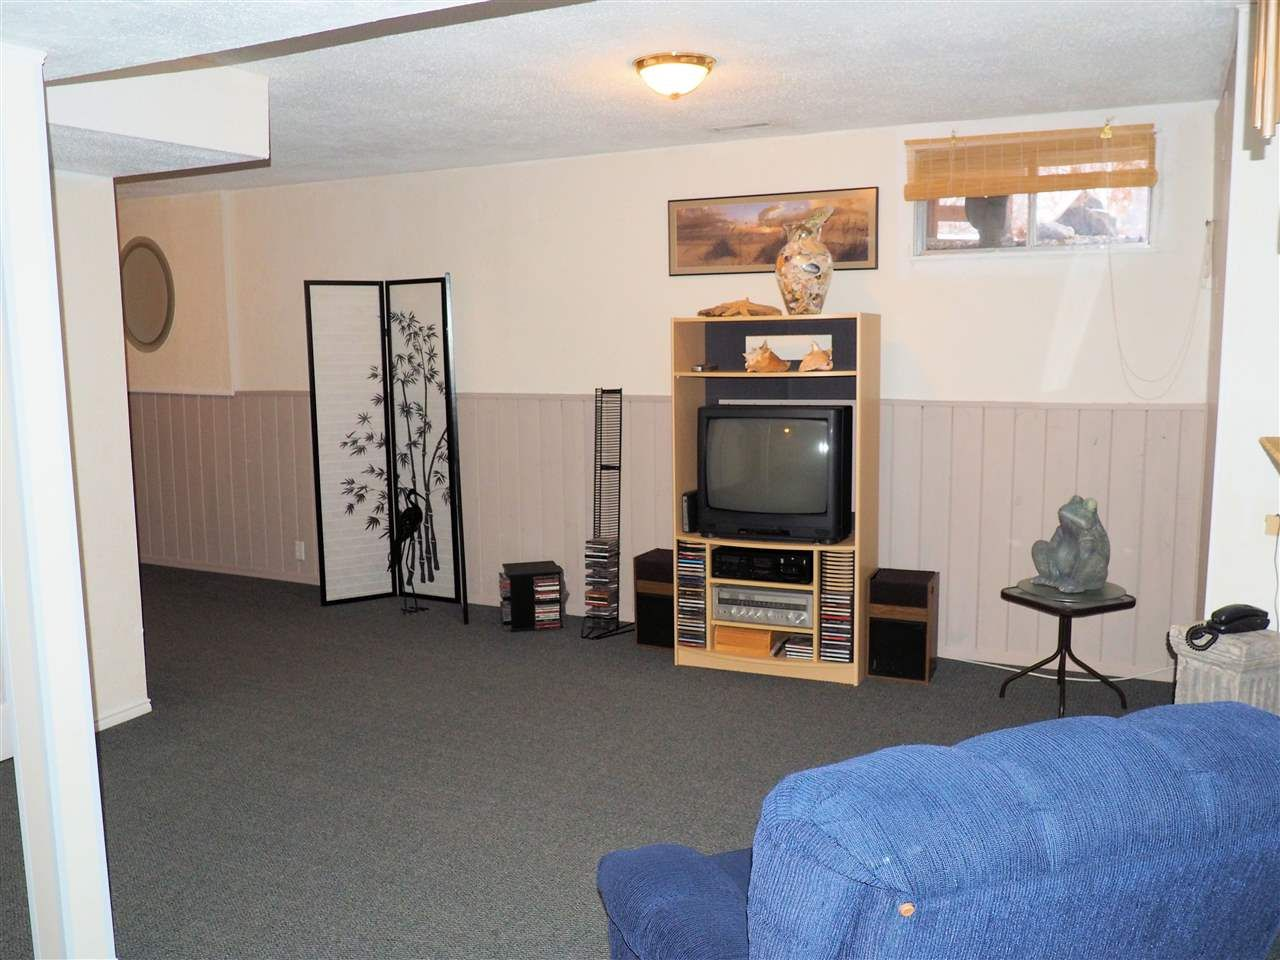 Photo 11: Photos: 4645 ROBSON Avenue in Prince George: Foothills House for sale (PG City West (Zone 71))  : MLS®# R2143048